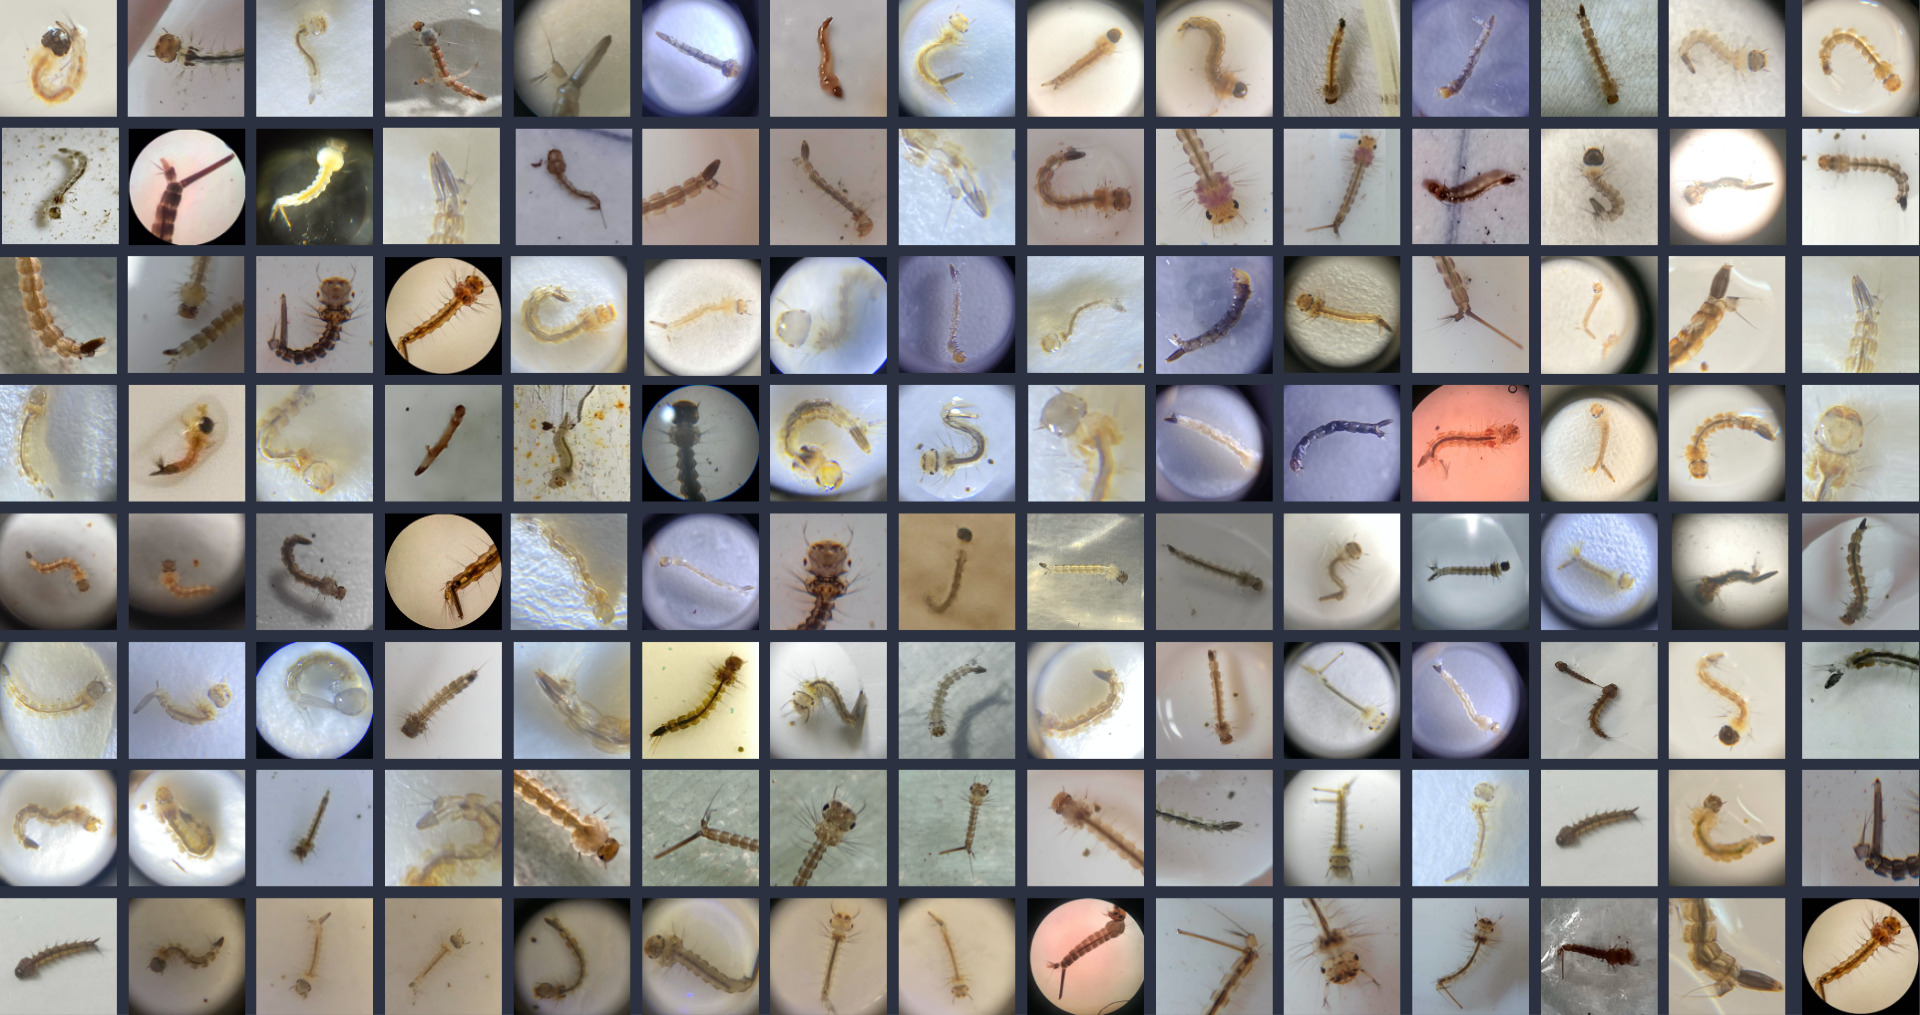 A sample of the nearly 500 mosquito larvae photos submitted through GLOBE Observer during the Mosquito Habitat Photo Challenge. The image is a screenshot from the challenge wrap up video available at https://youtu.be/EHpxFoxgHEY